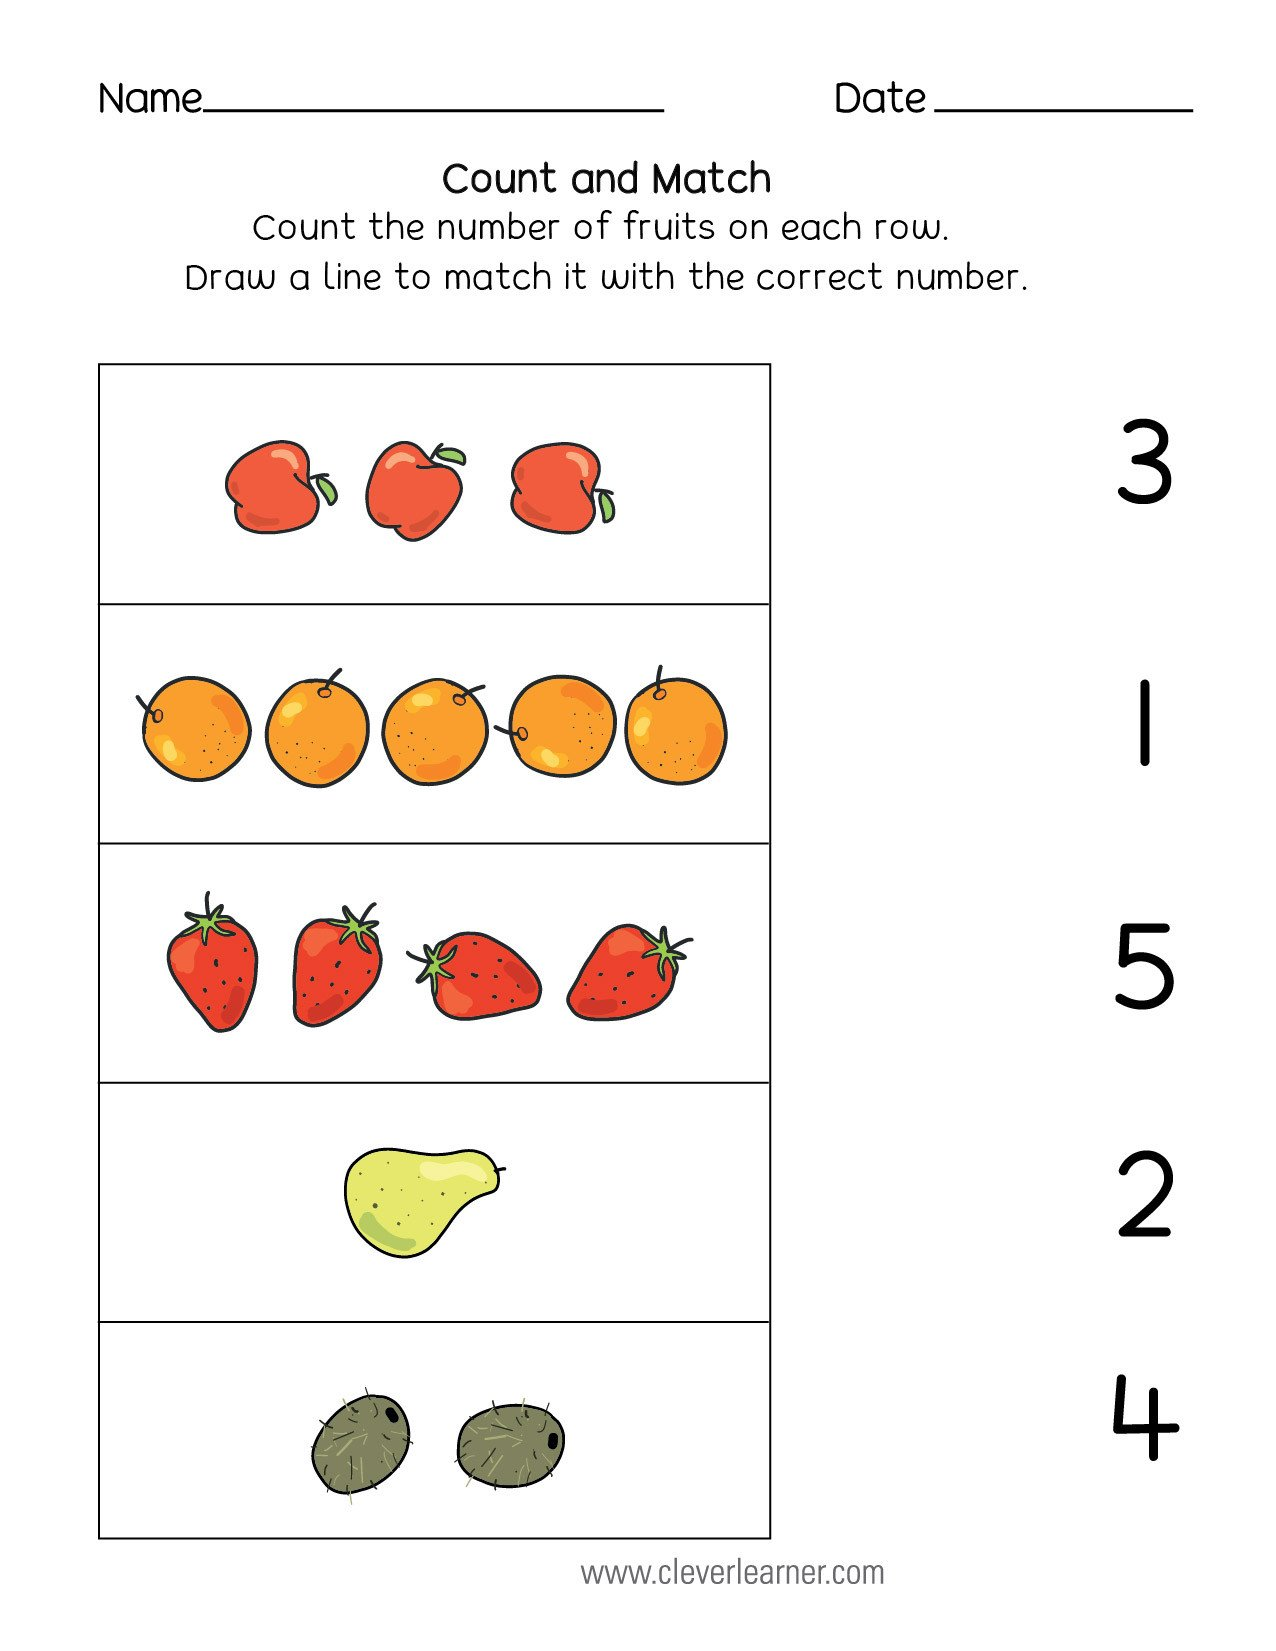 20 Matching Numbers To Quantities Worksheet